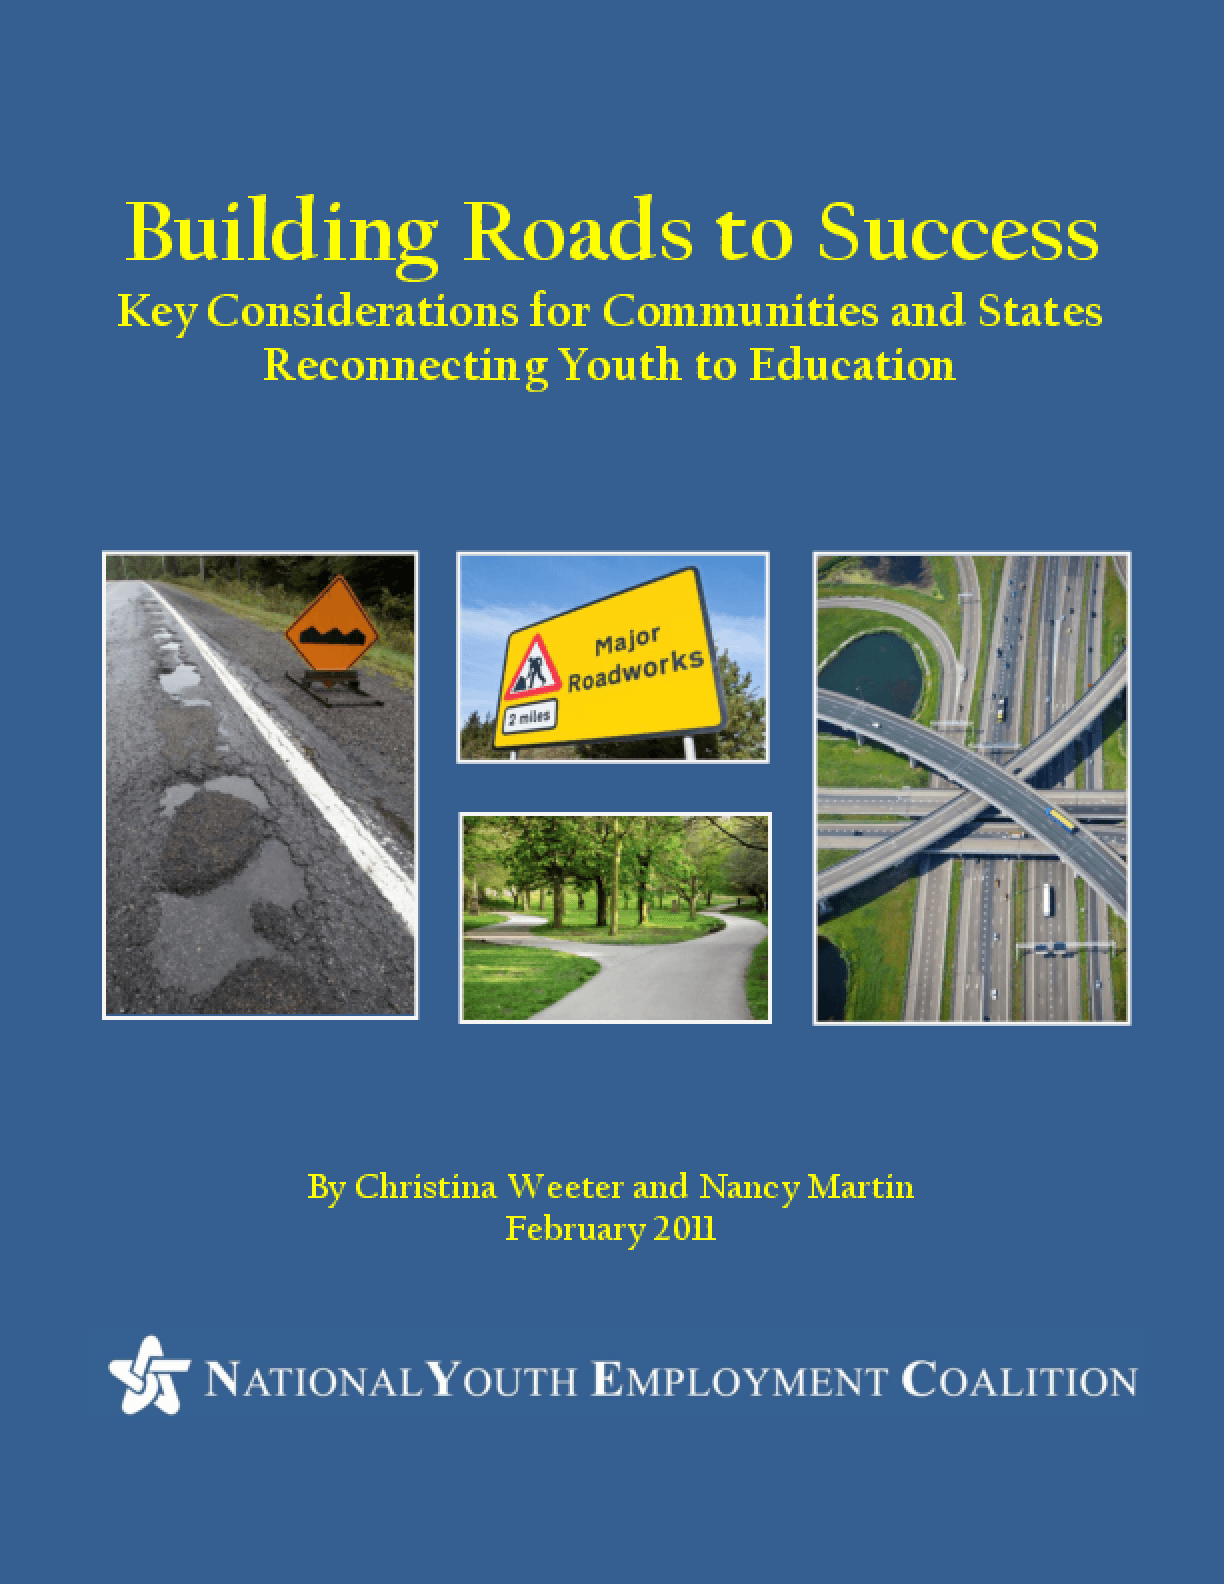 Building Roads to Success: Key Considerations for Communities & States Reconnecting Youth to Education